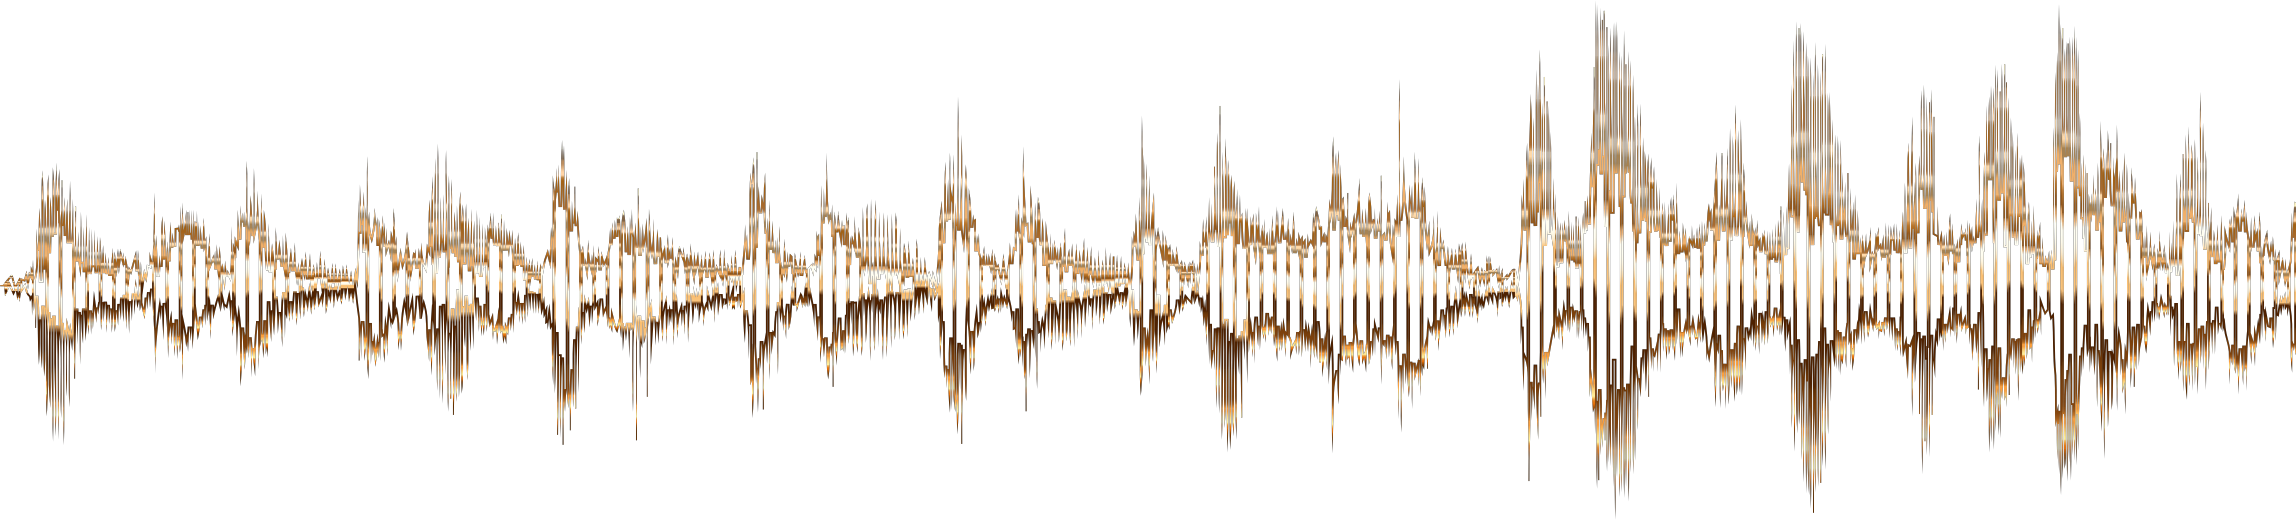 Clipart wave clear background. City of gold sound